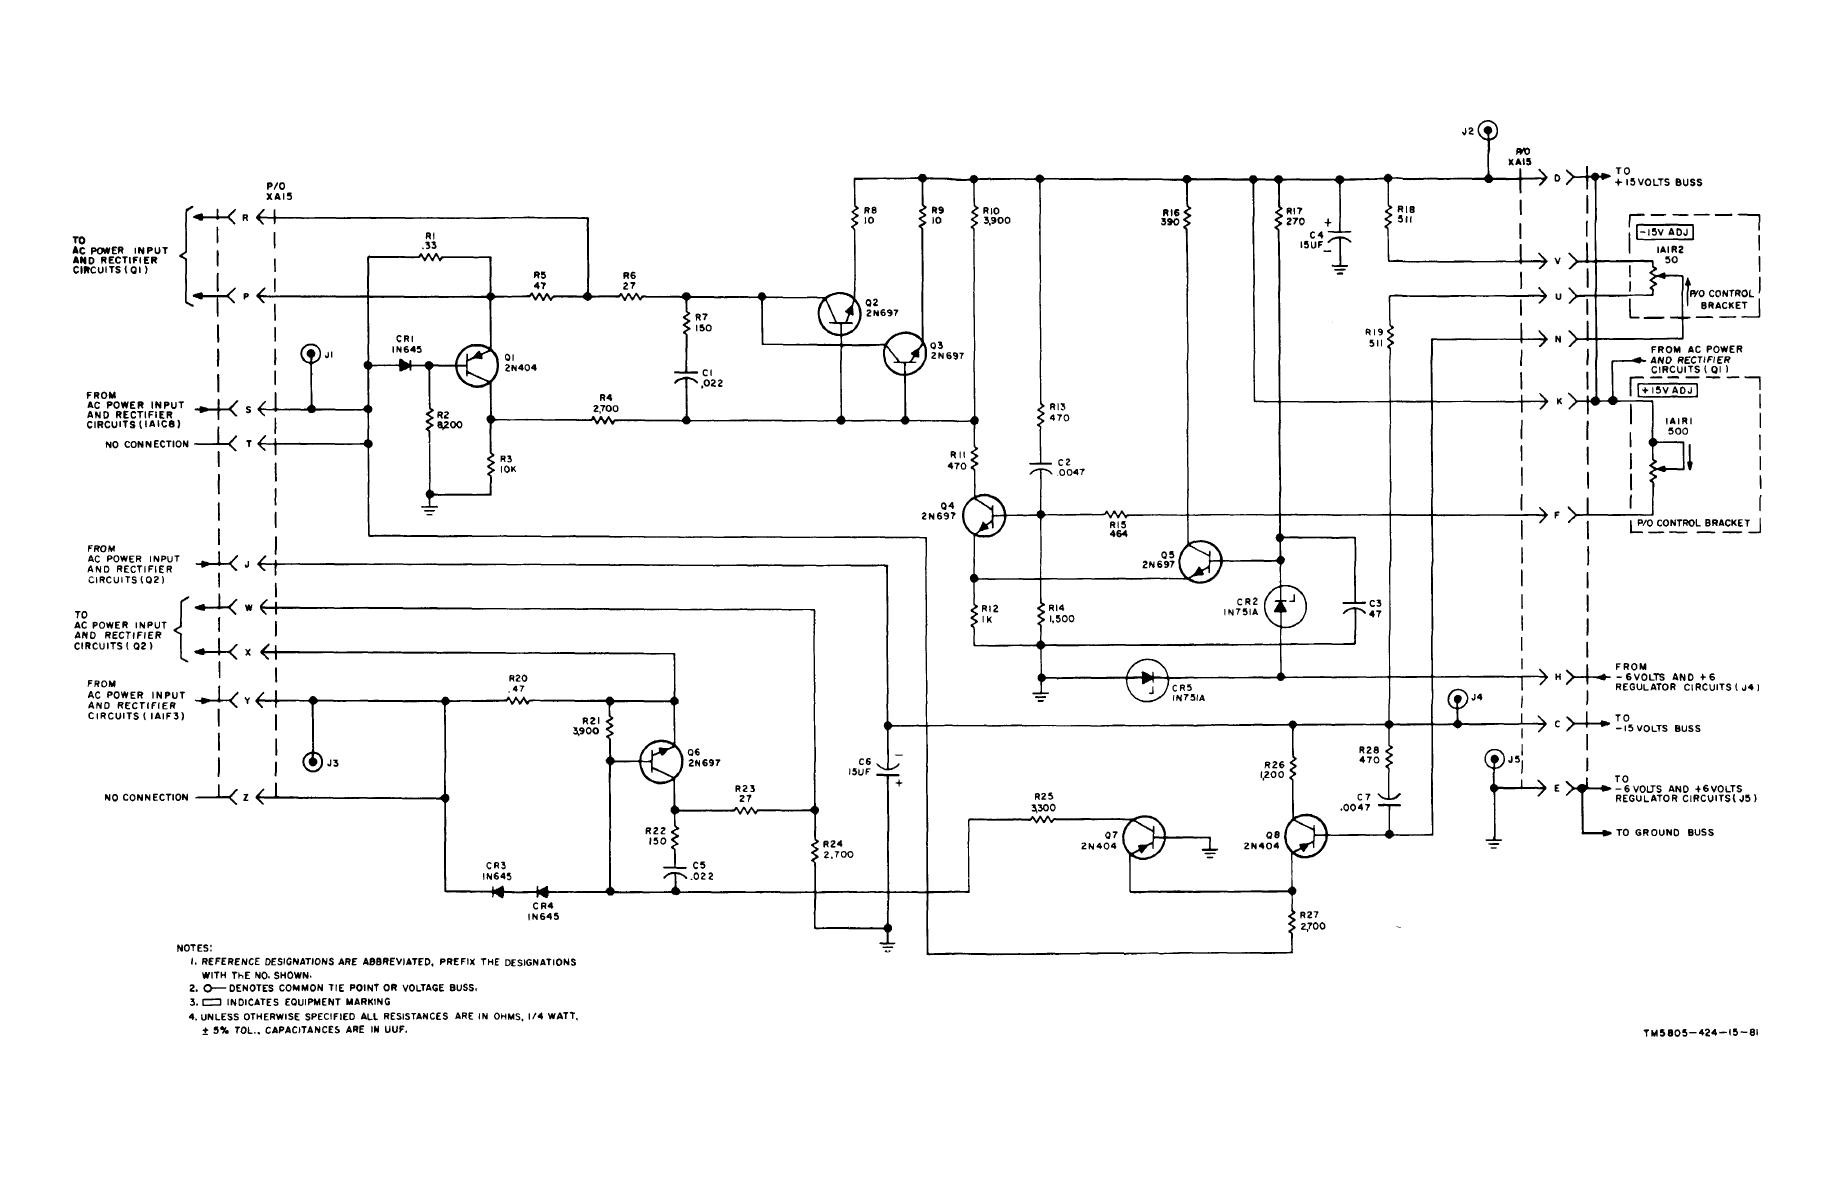 Pc Power Supply Wiring Diagram Pc Power Supply Wiring Diagram pc